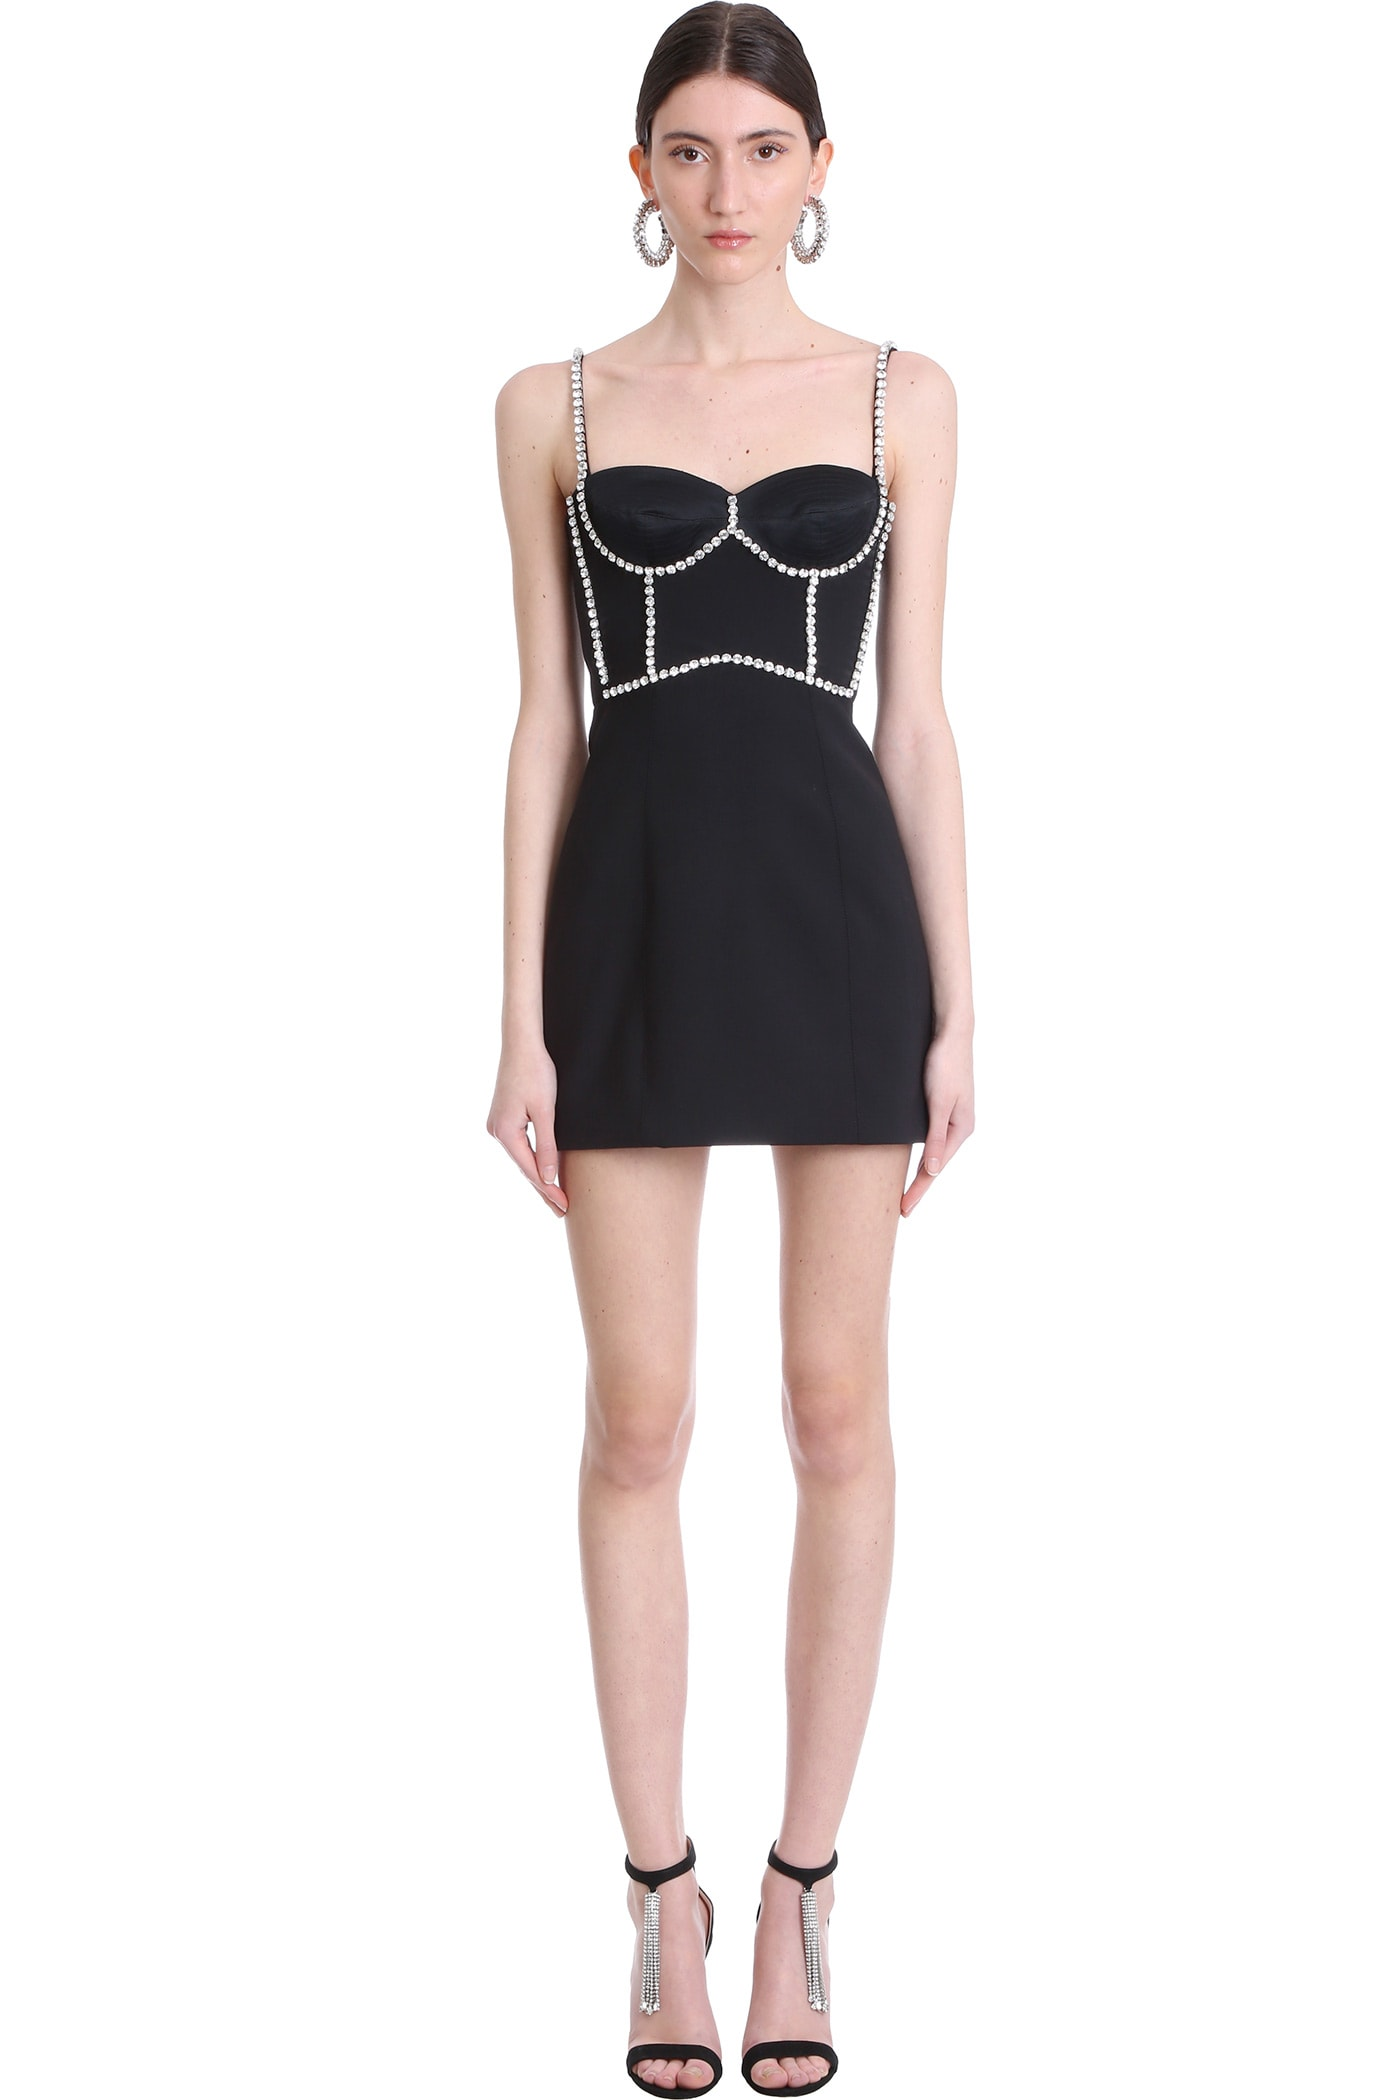 Area DRESS IN BLACK POLYESTER